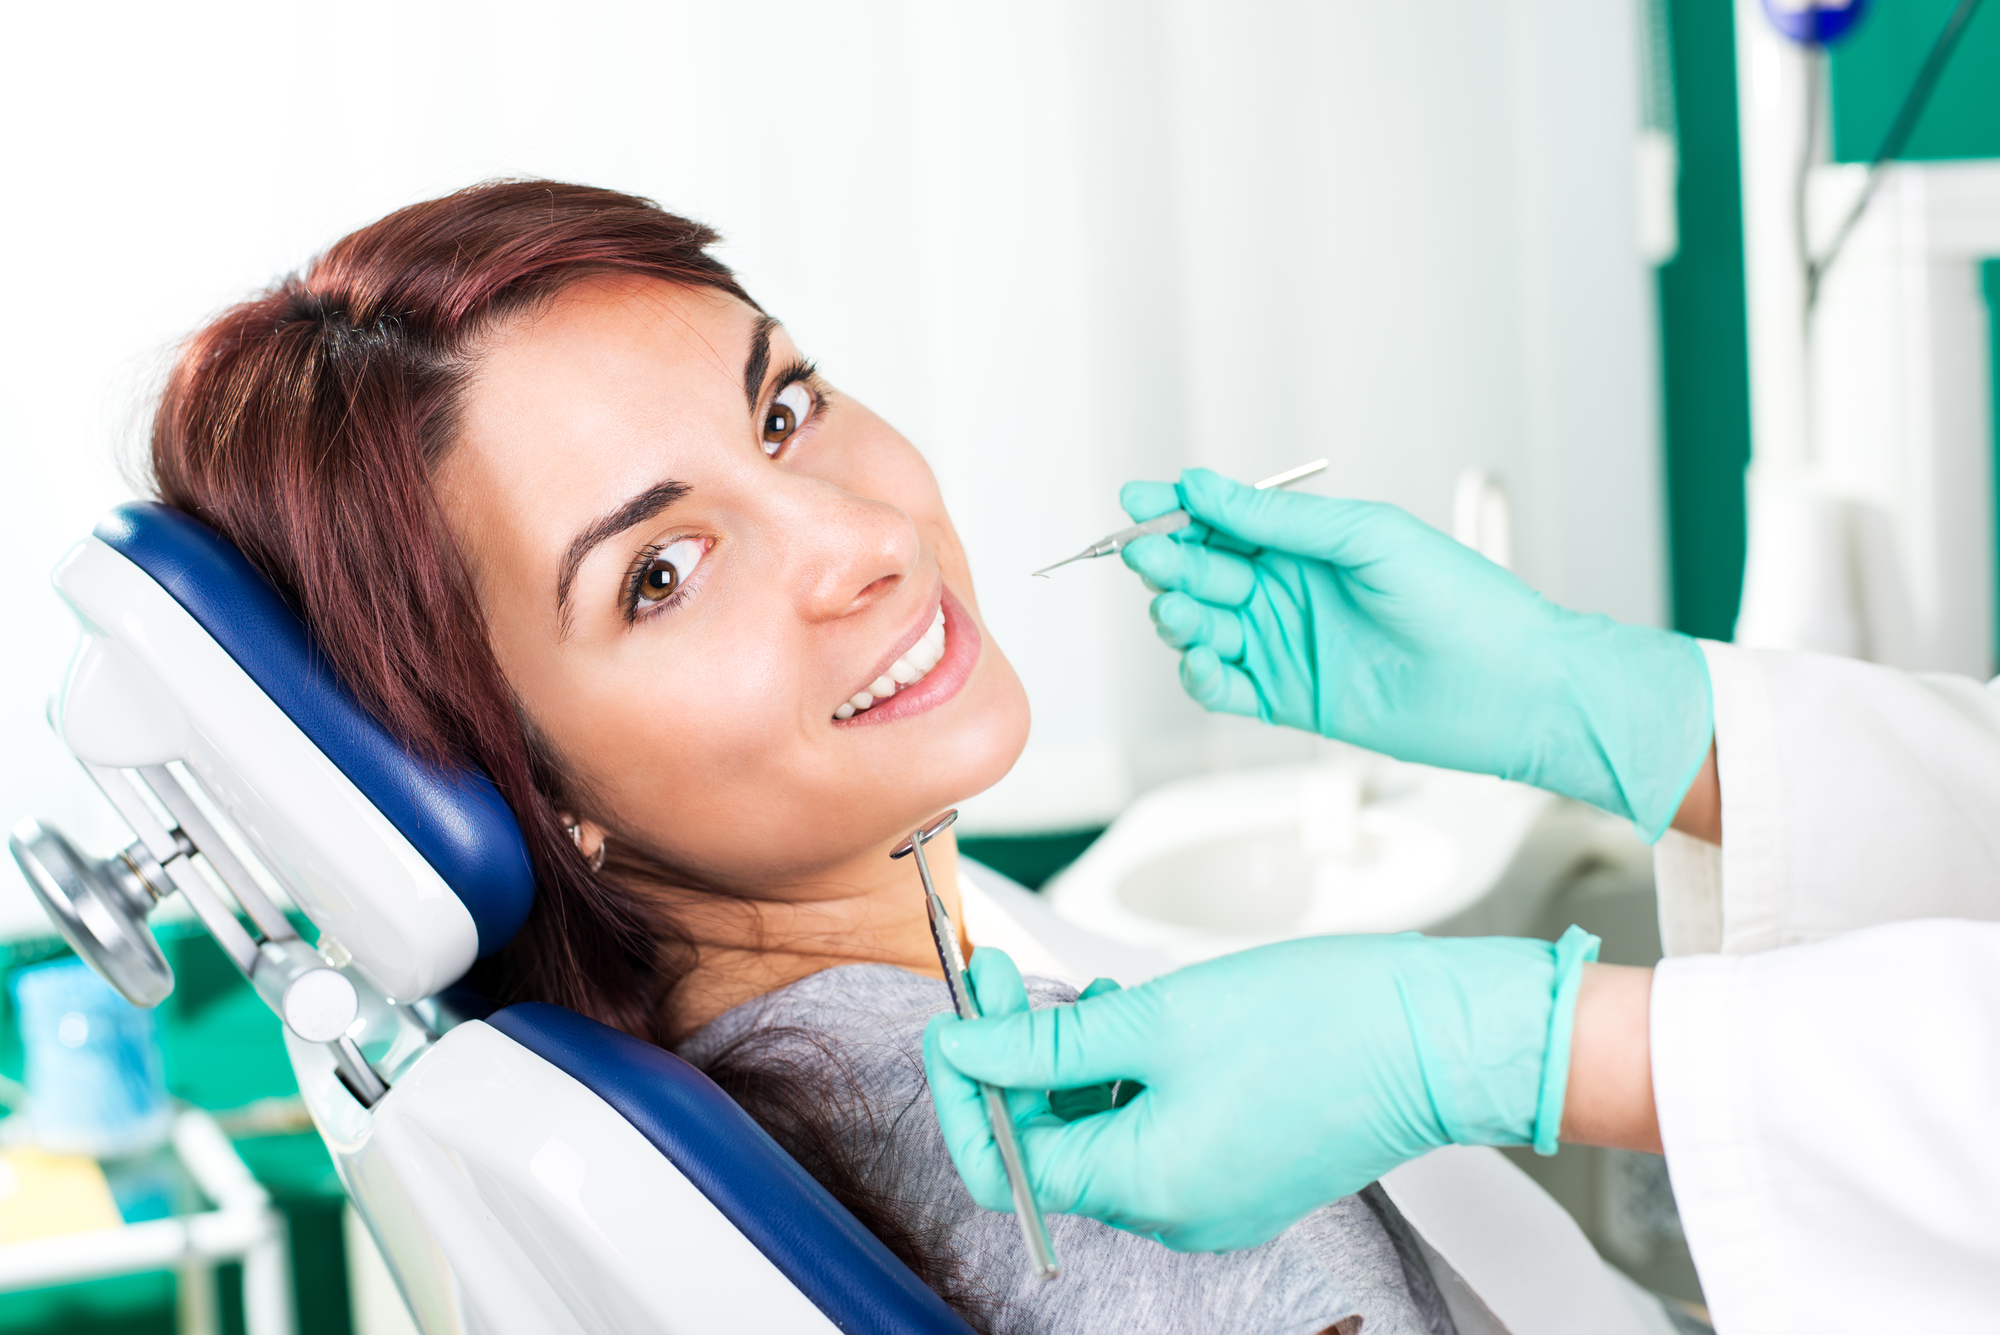 Where can I get West Palm Beach dental care?